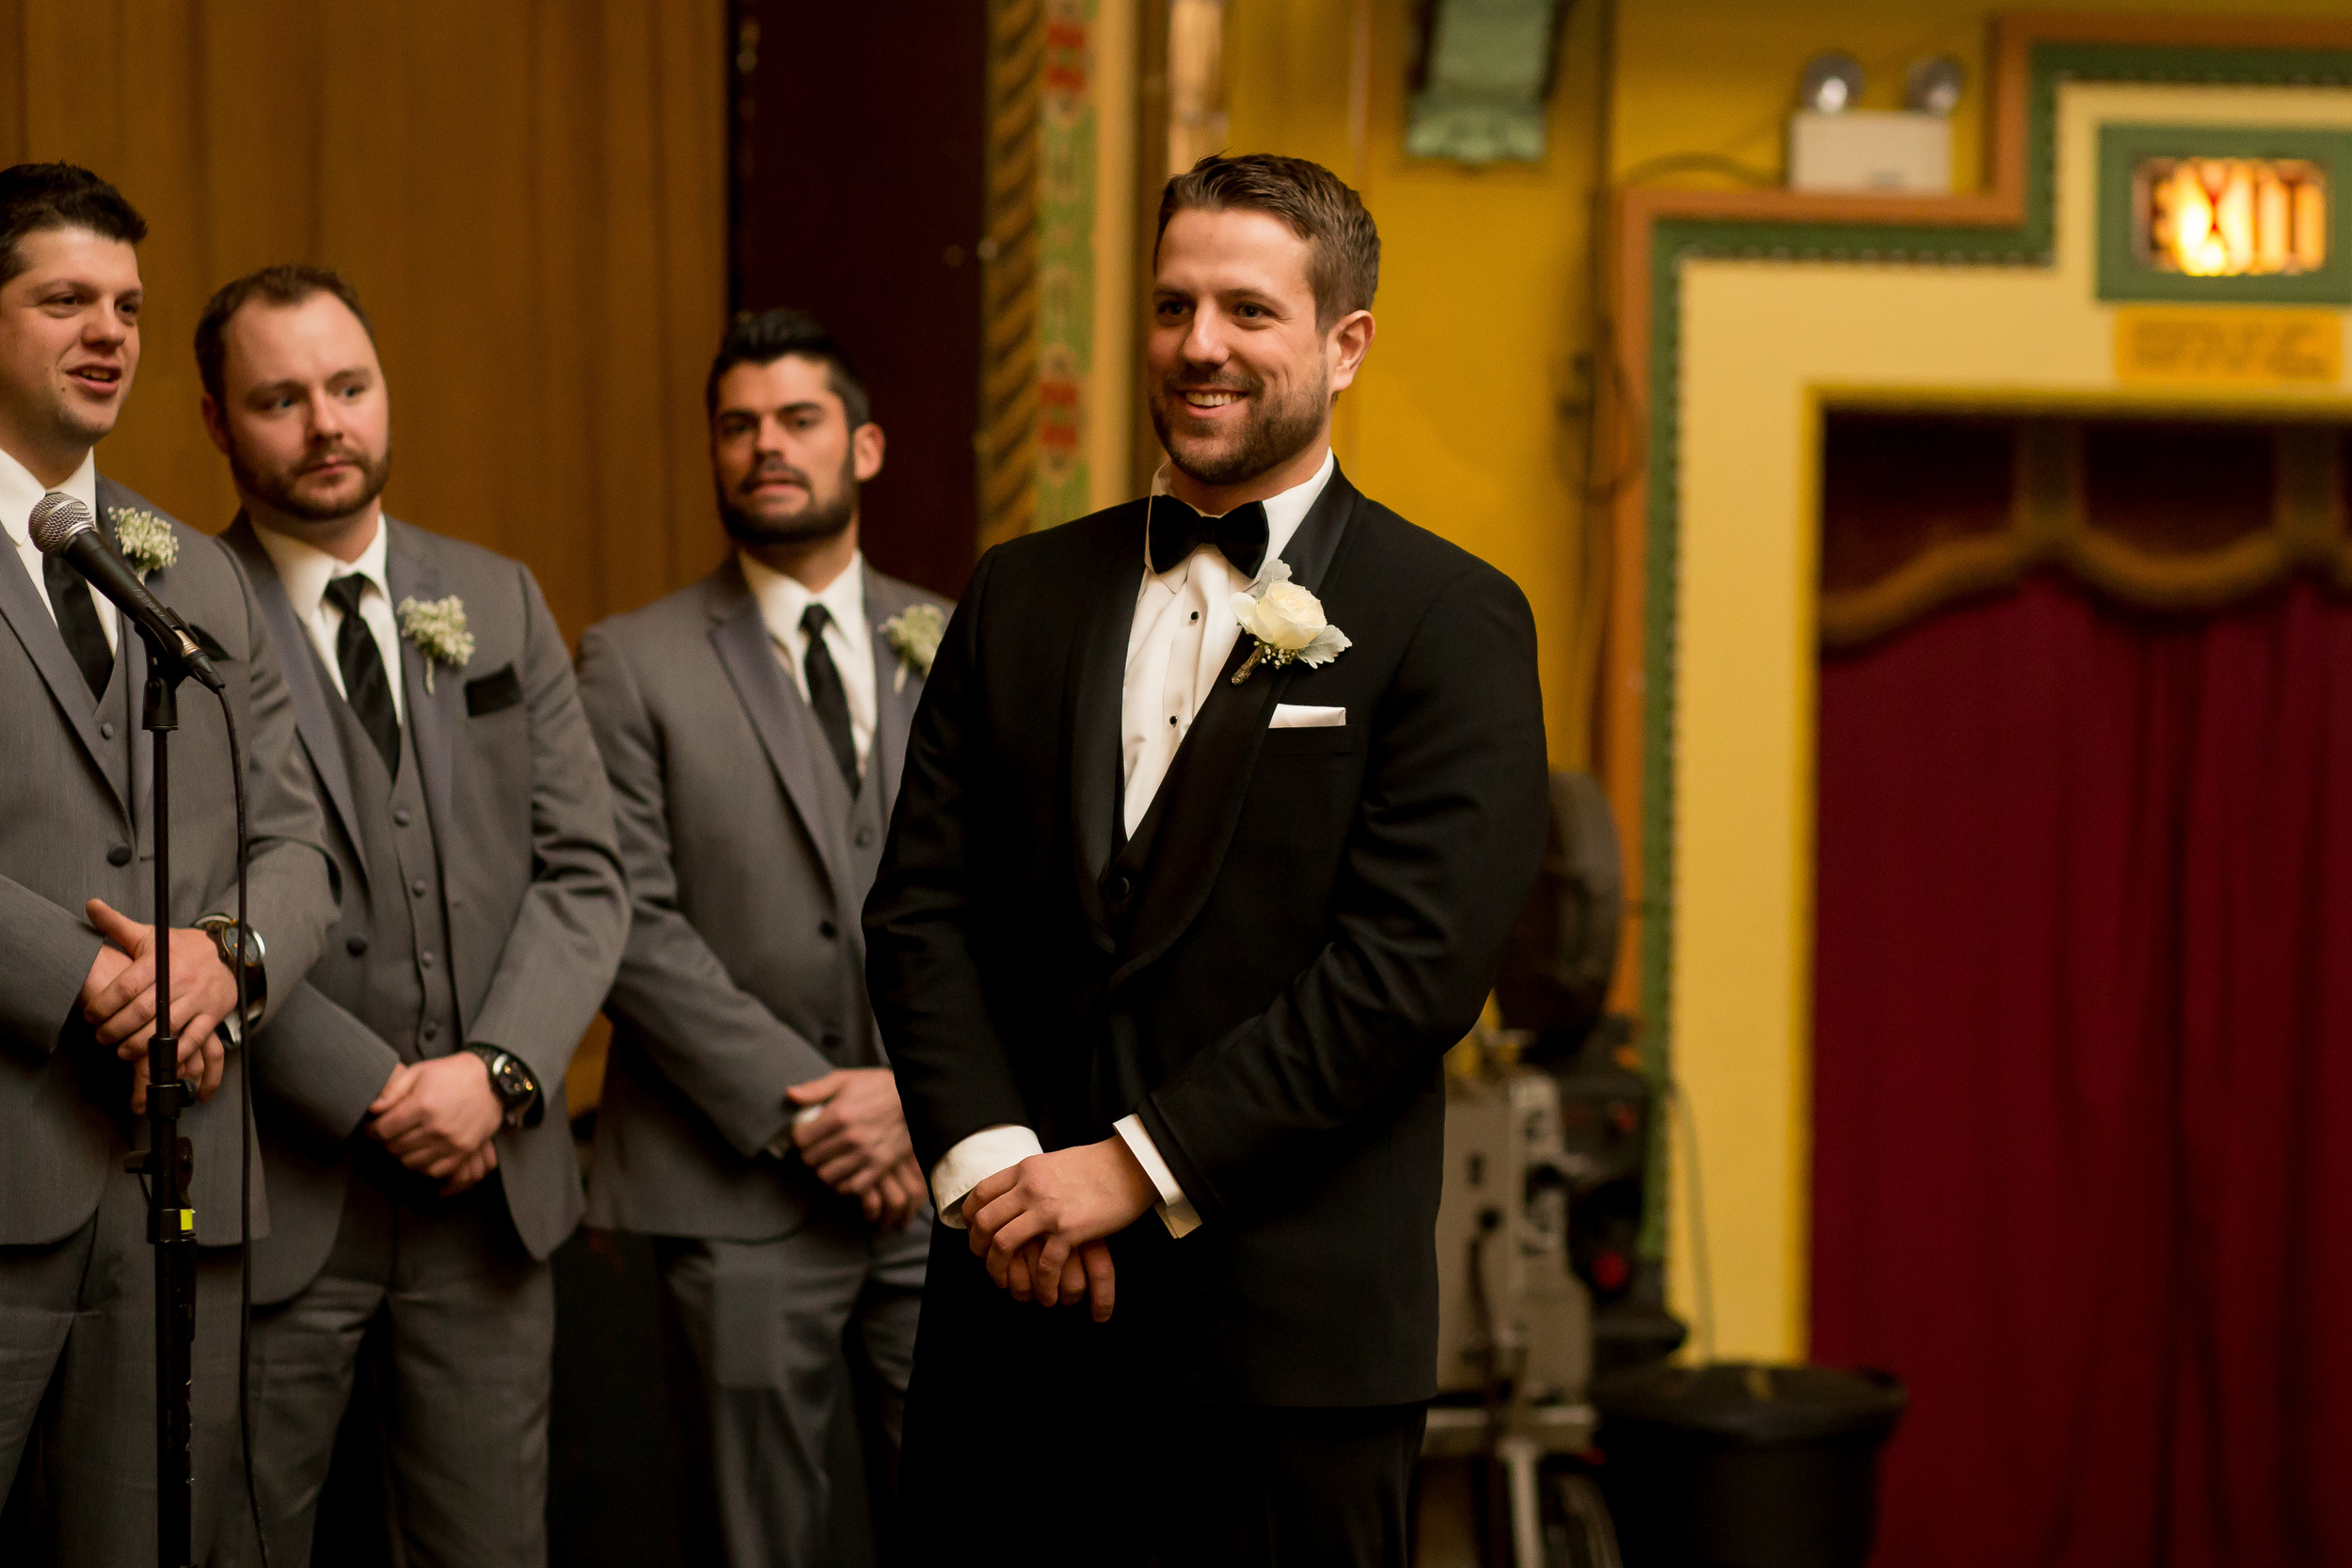 The groom waiting at the alter watching the bride walk down the aisle